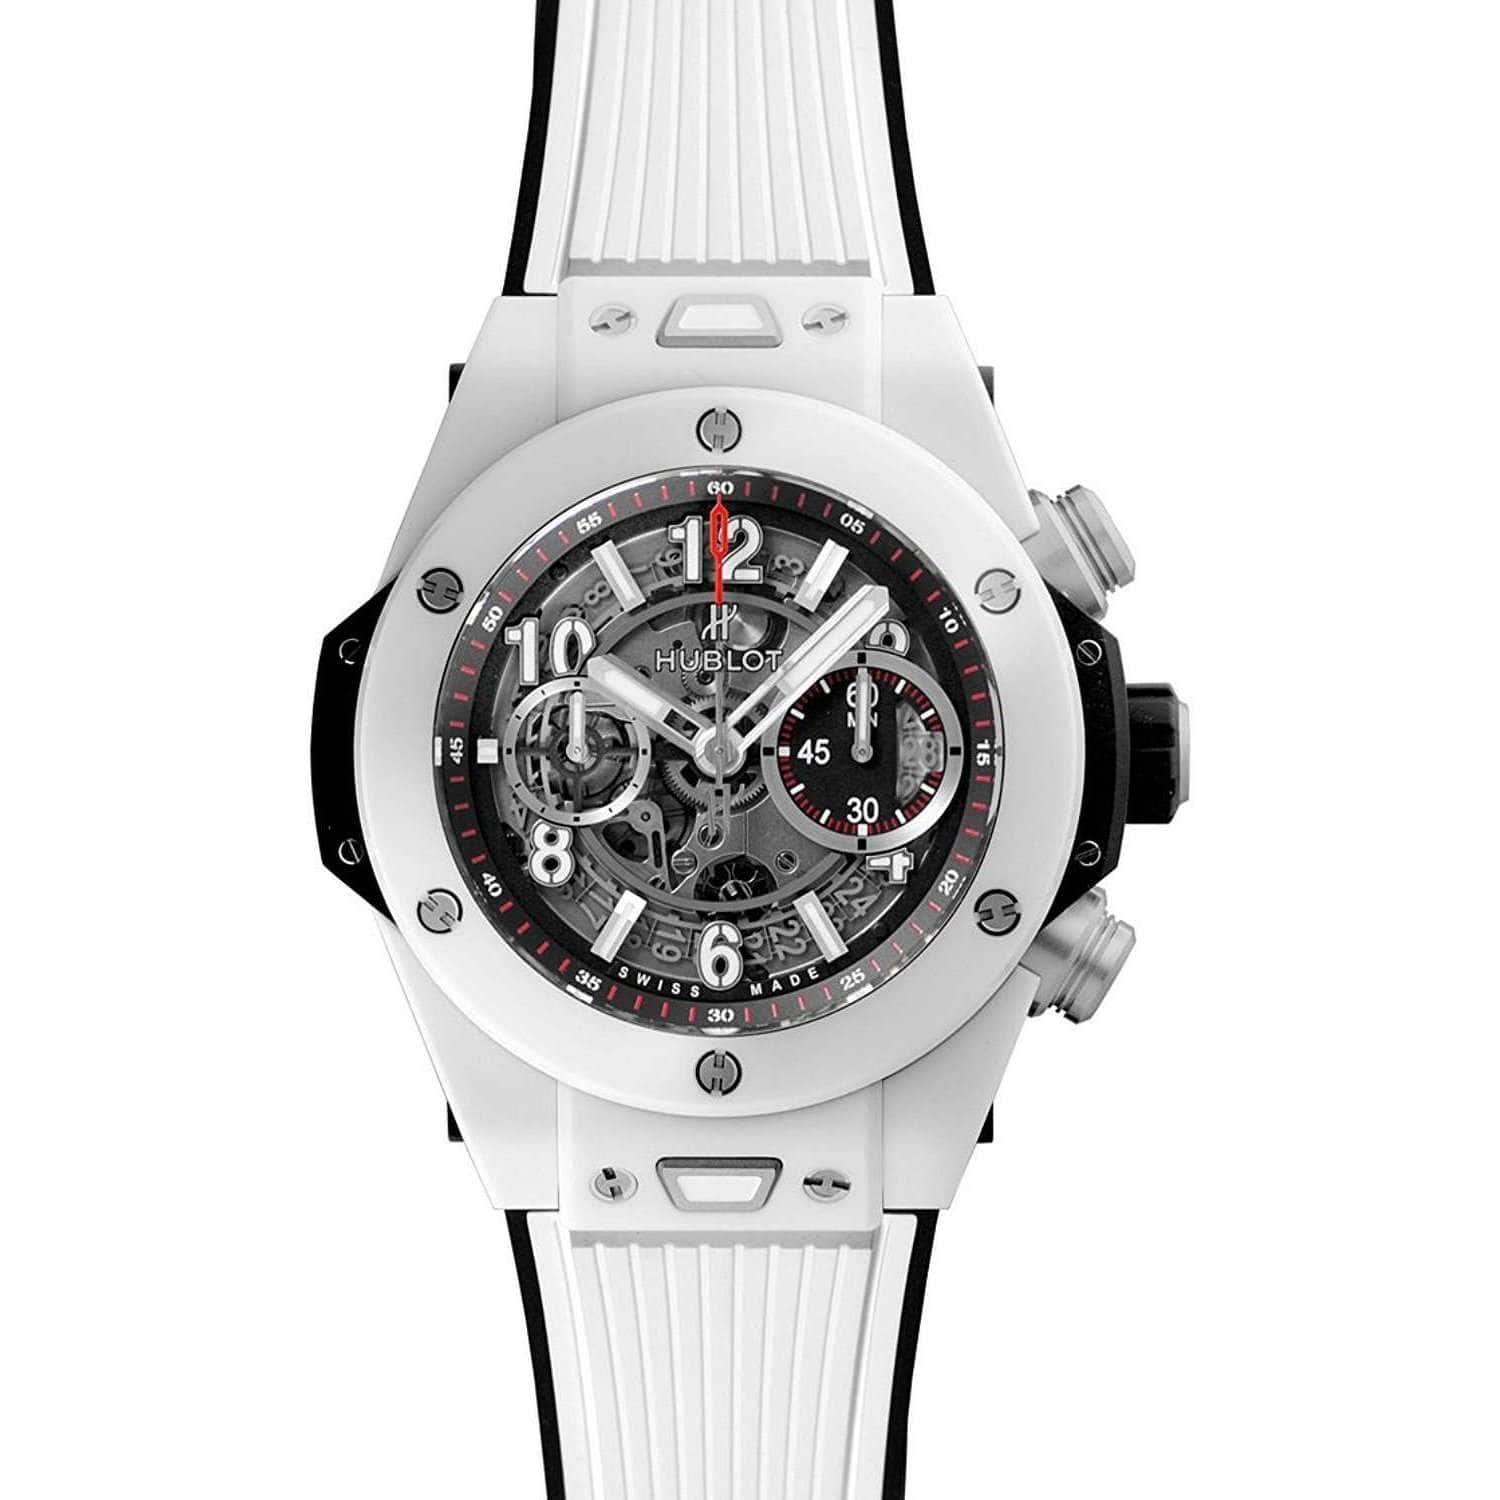 dial s chronograph emporio armani sportivo men watches with watch white rubber